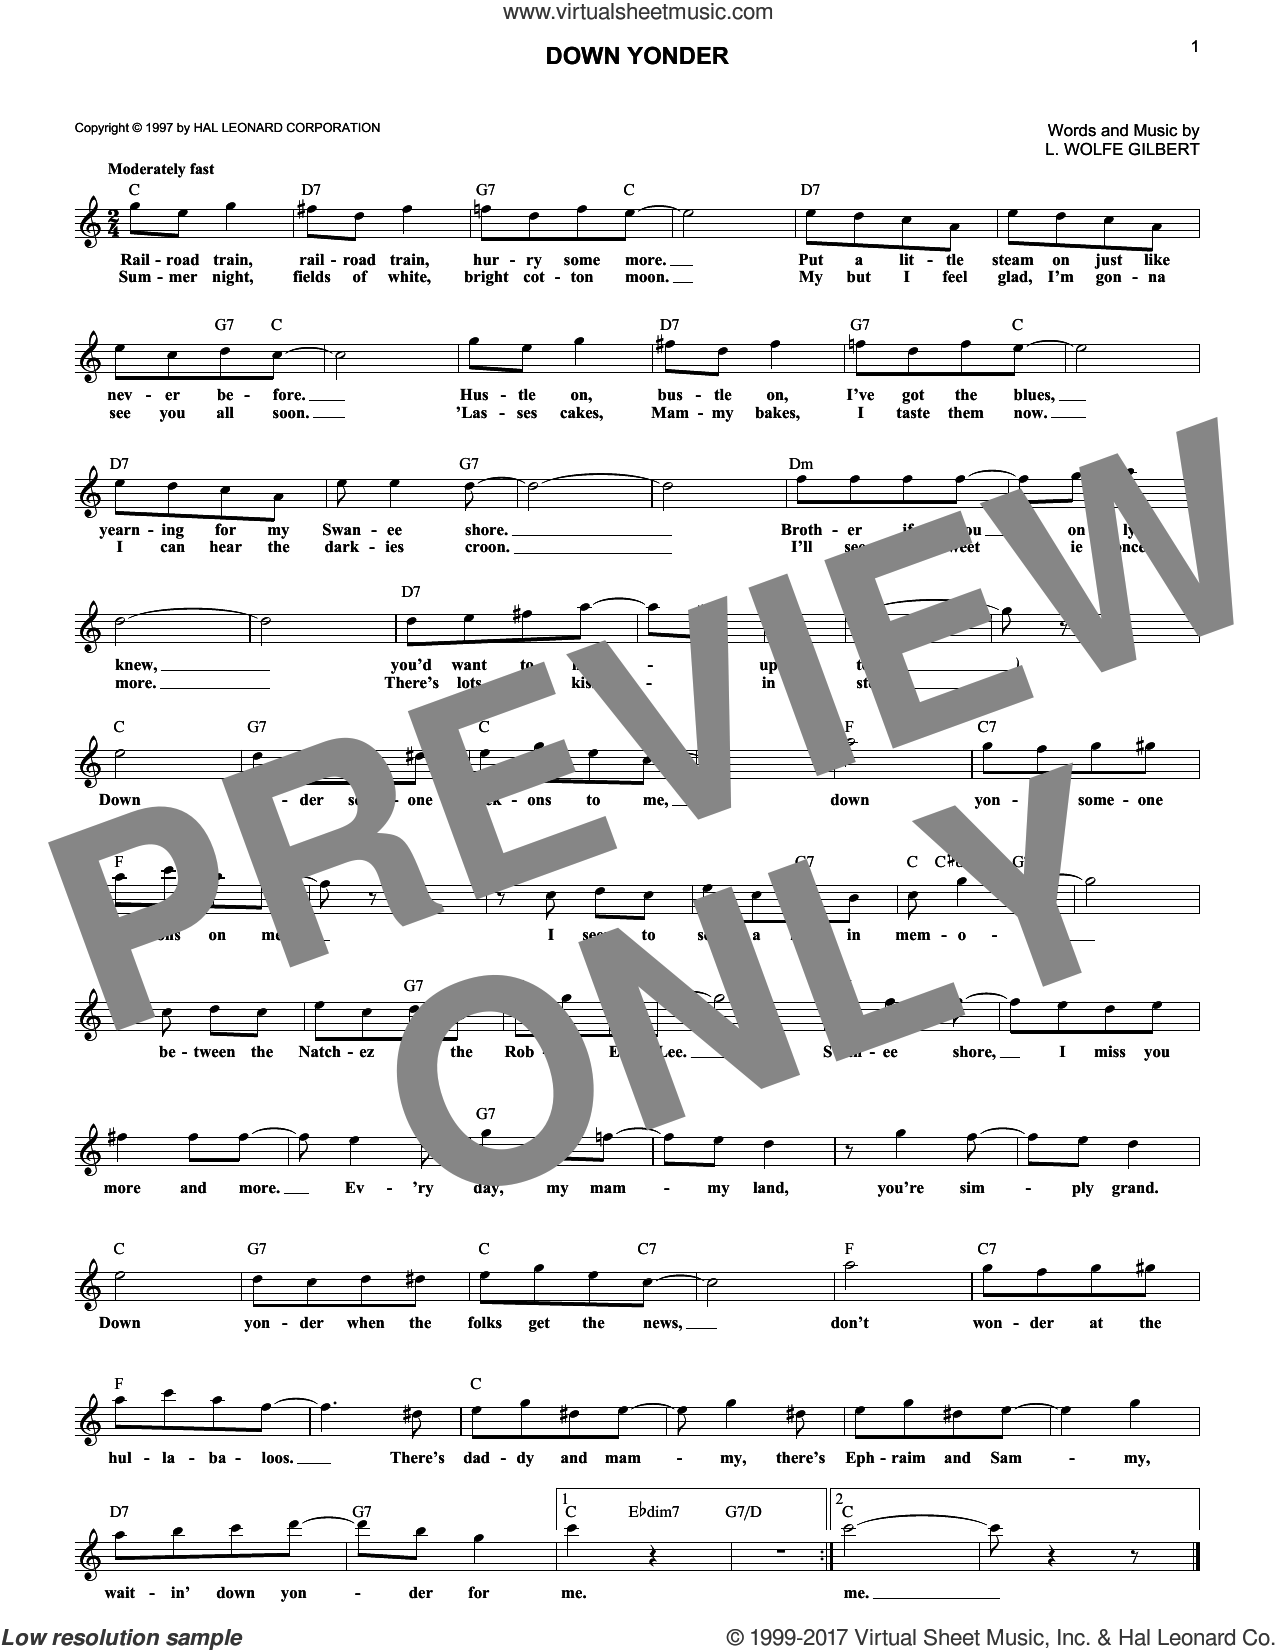 Down Yonder sheet music for voice and other instruments (fake book) by L. Wolfe Gilbert, intermediate skill level